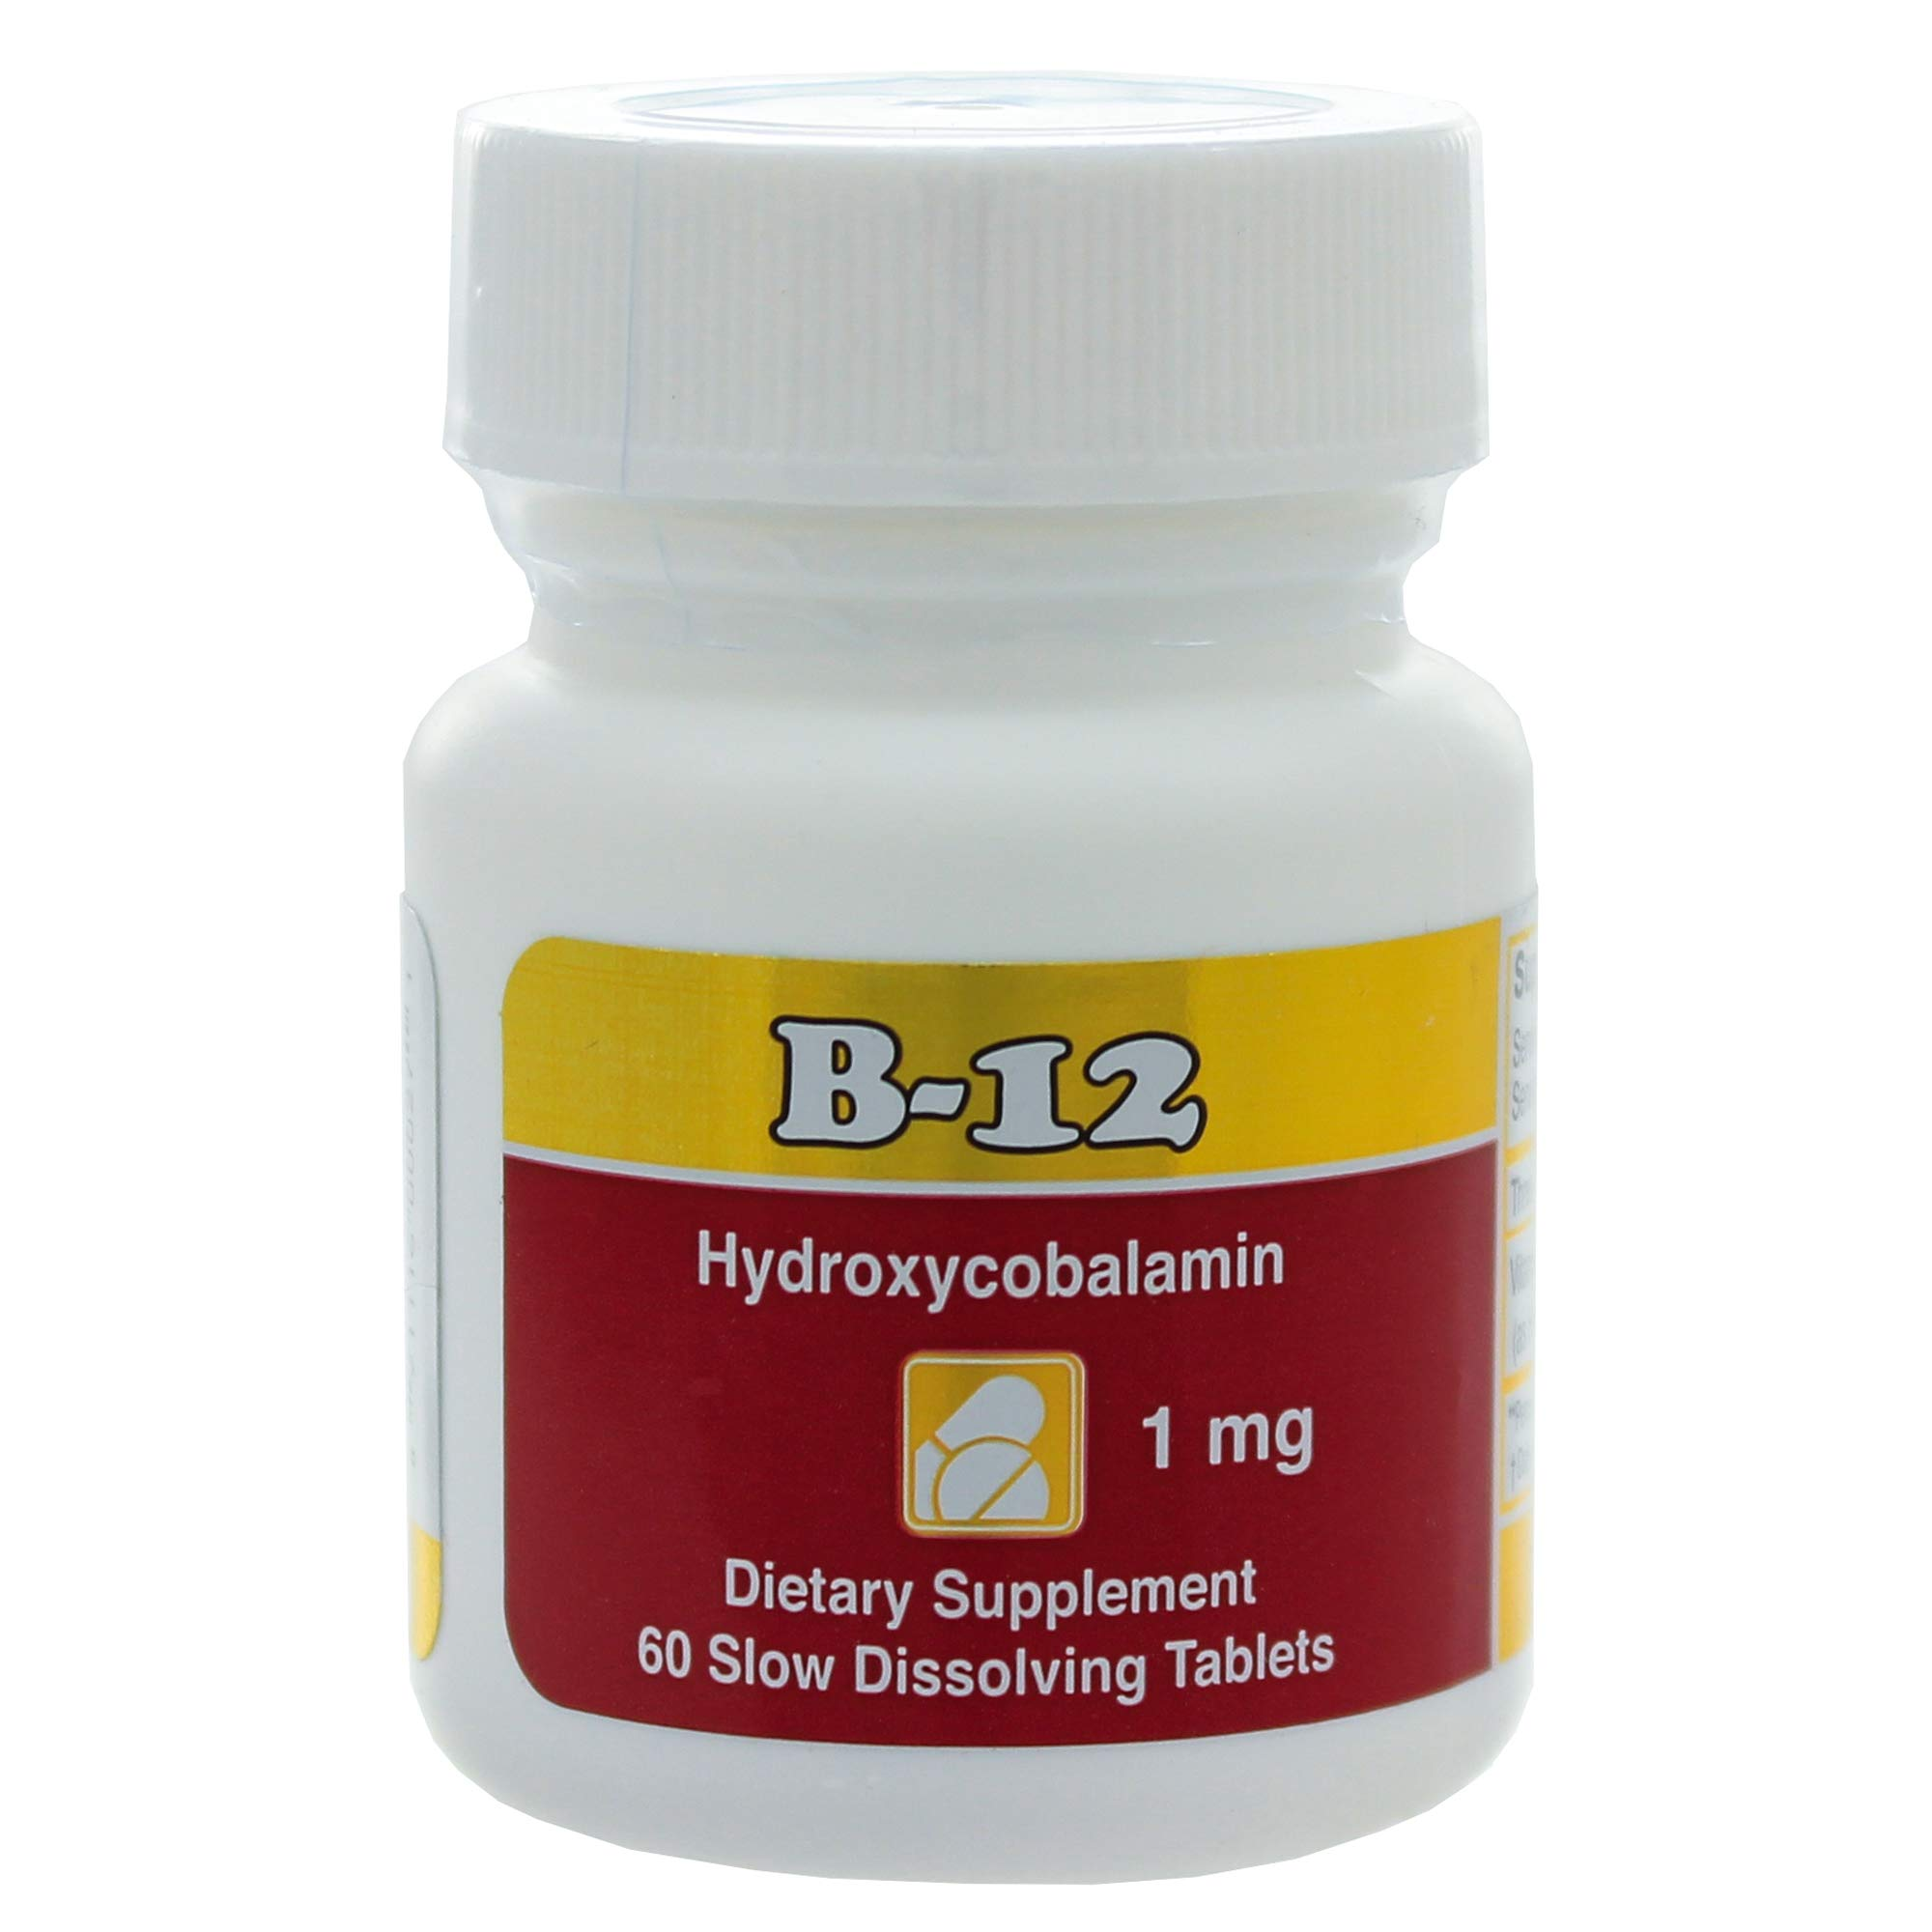 Intensive Nutrition, Inc. - B-12 Hydroxycobalamin 1 mg. - 60 Tablets